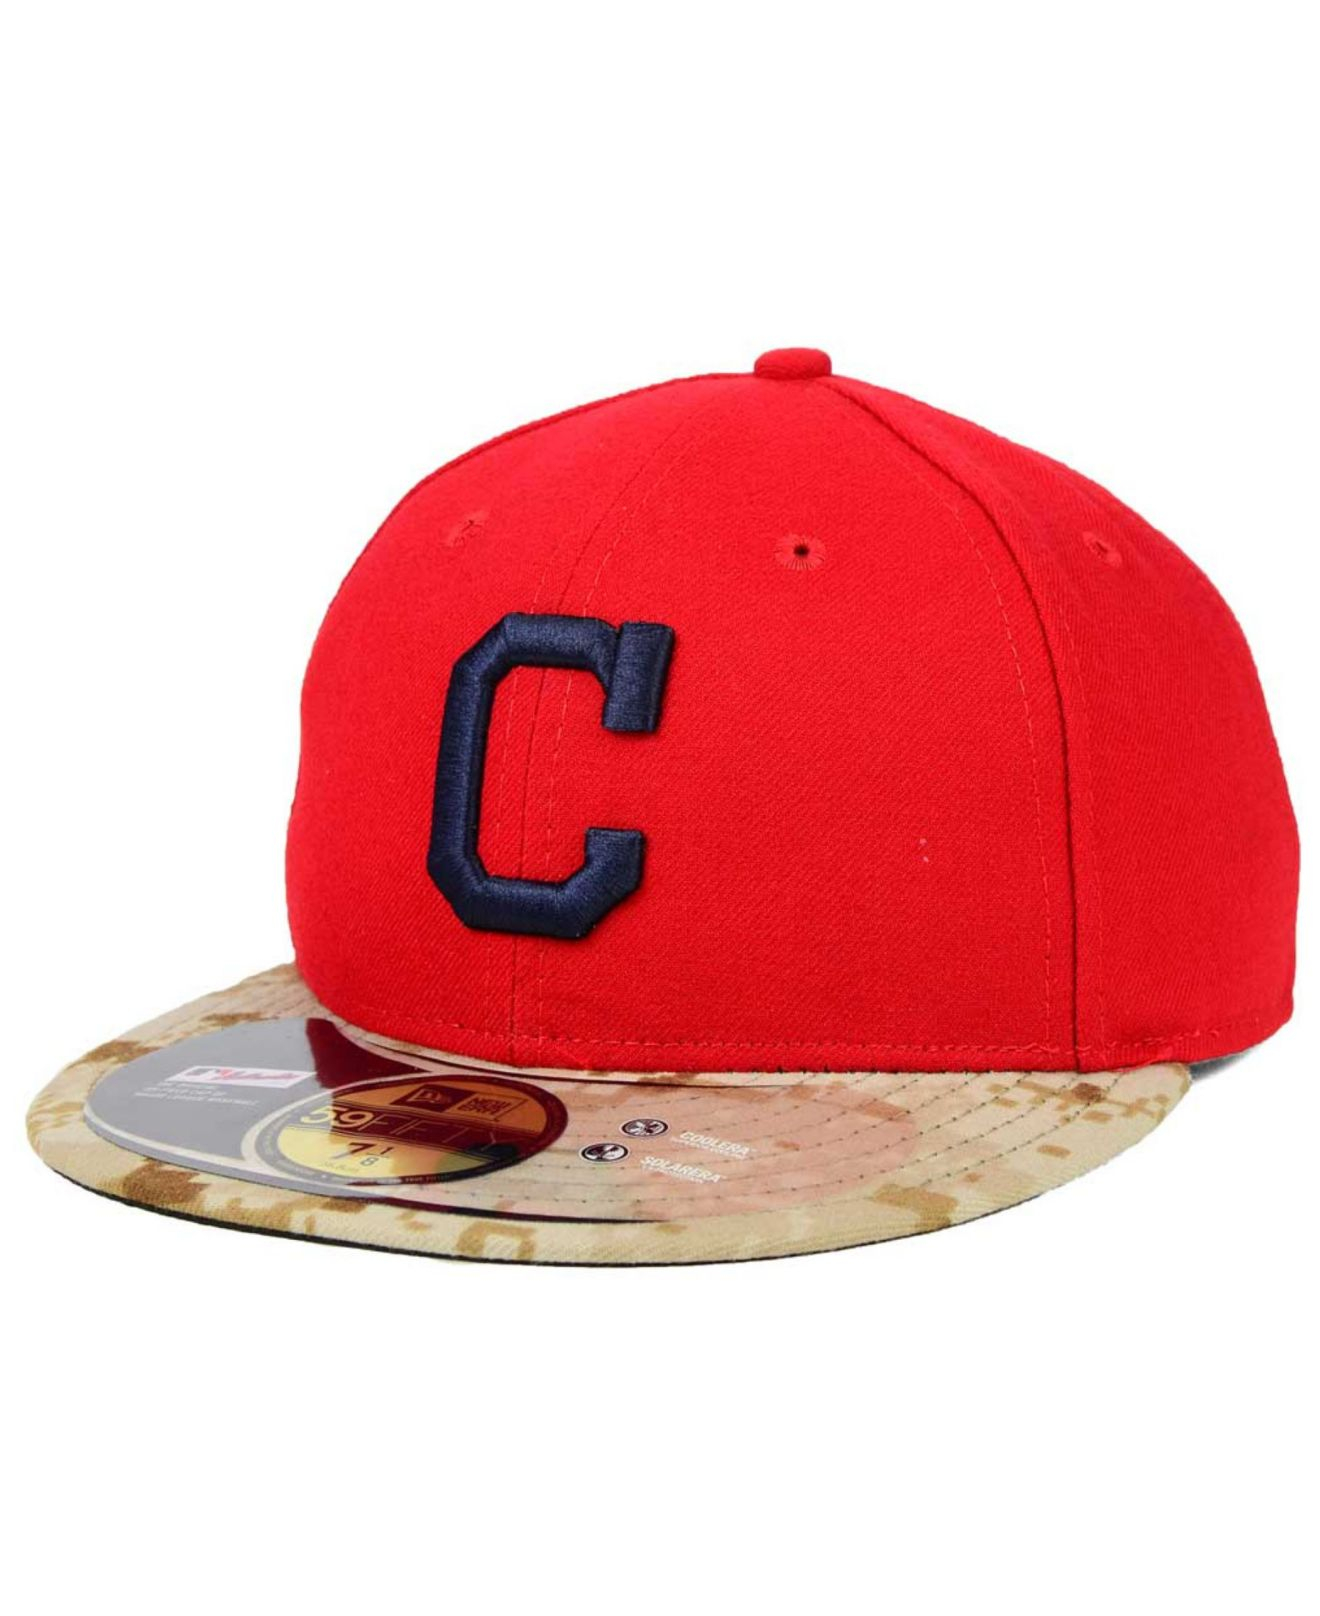 9a0644f38b948 Lyst - KTZ Cleveland Indians 2015 Memorial Day Stars And Stripes ...